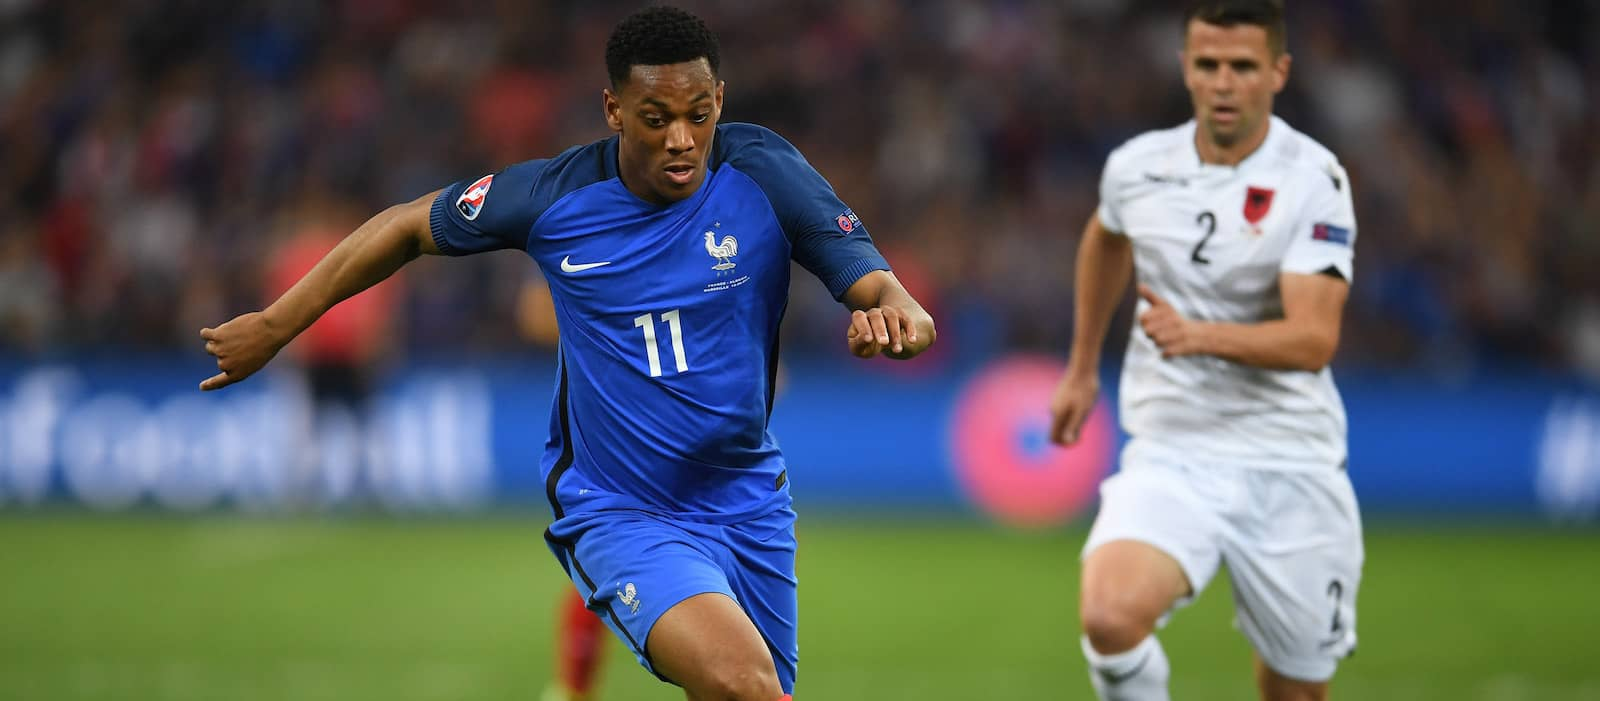 Photo: Anthony Martial pleased as France progress to Euro 2016 finals